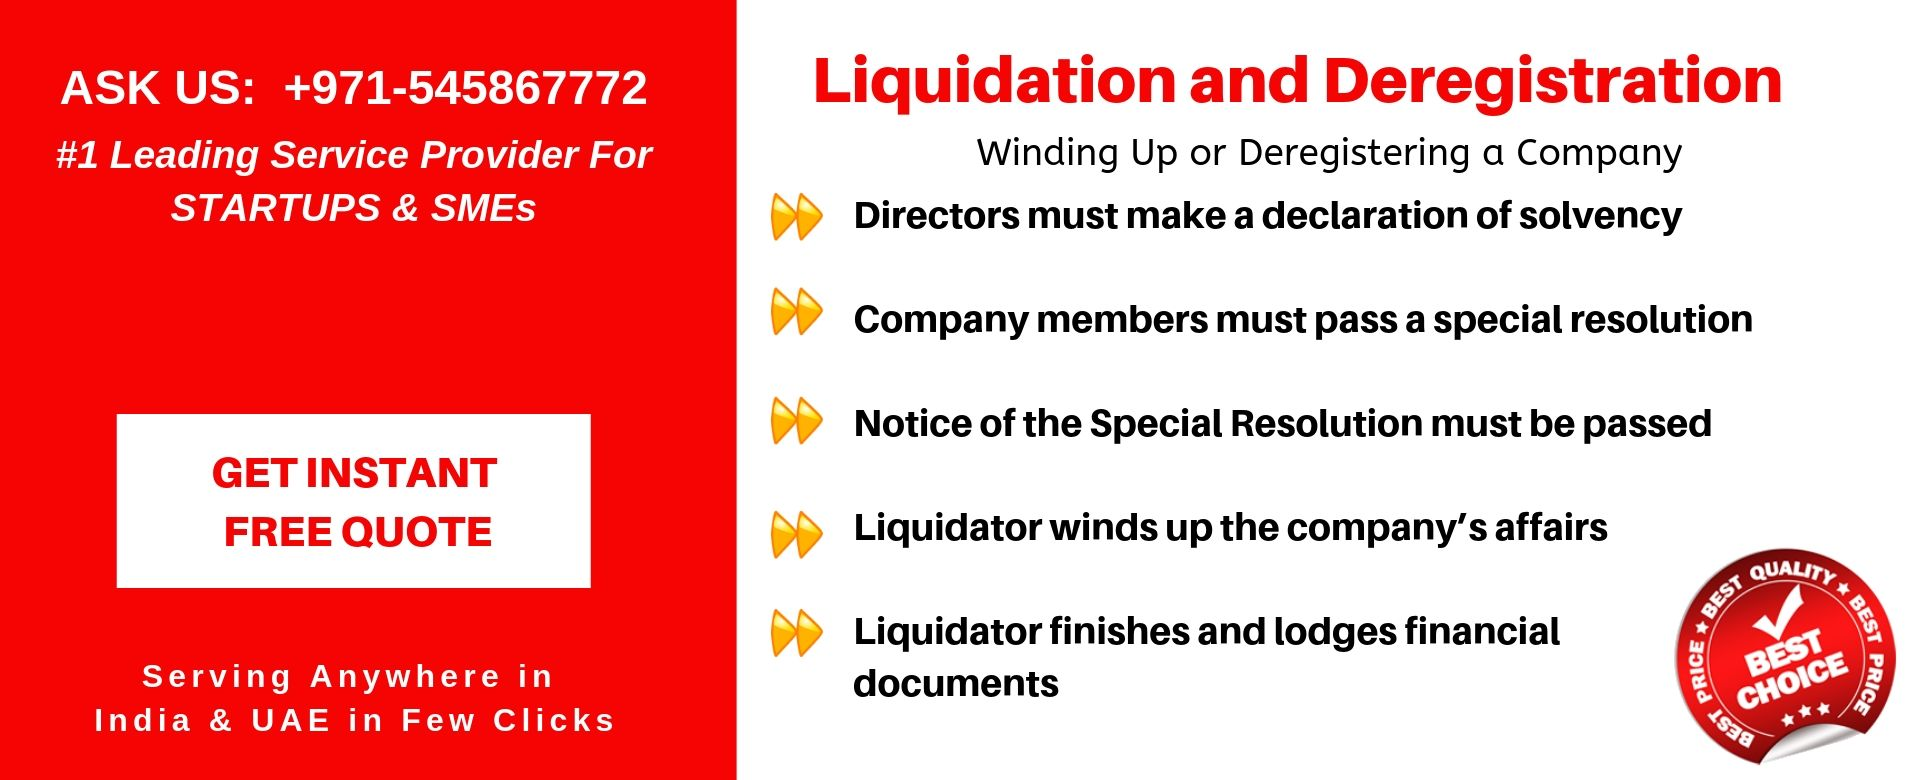 liquidation and deregistration in uae